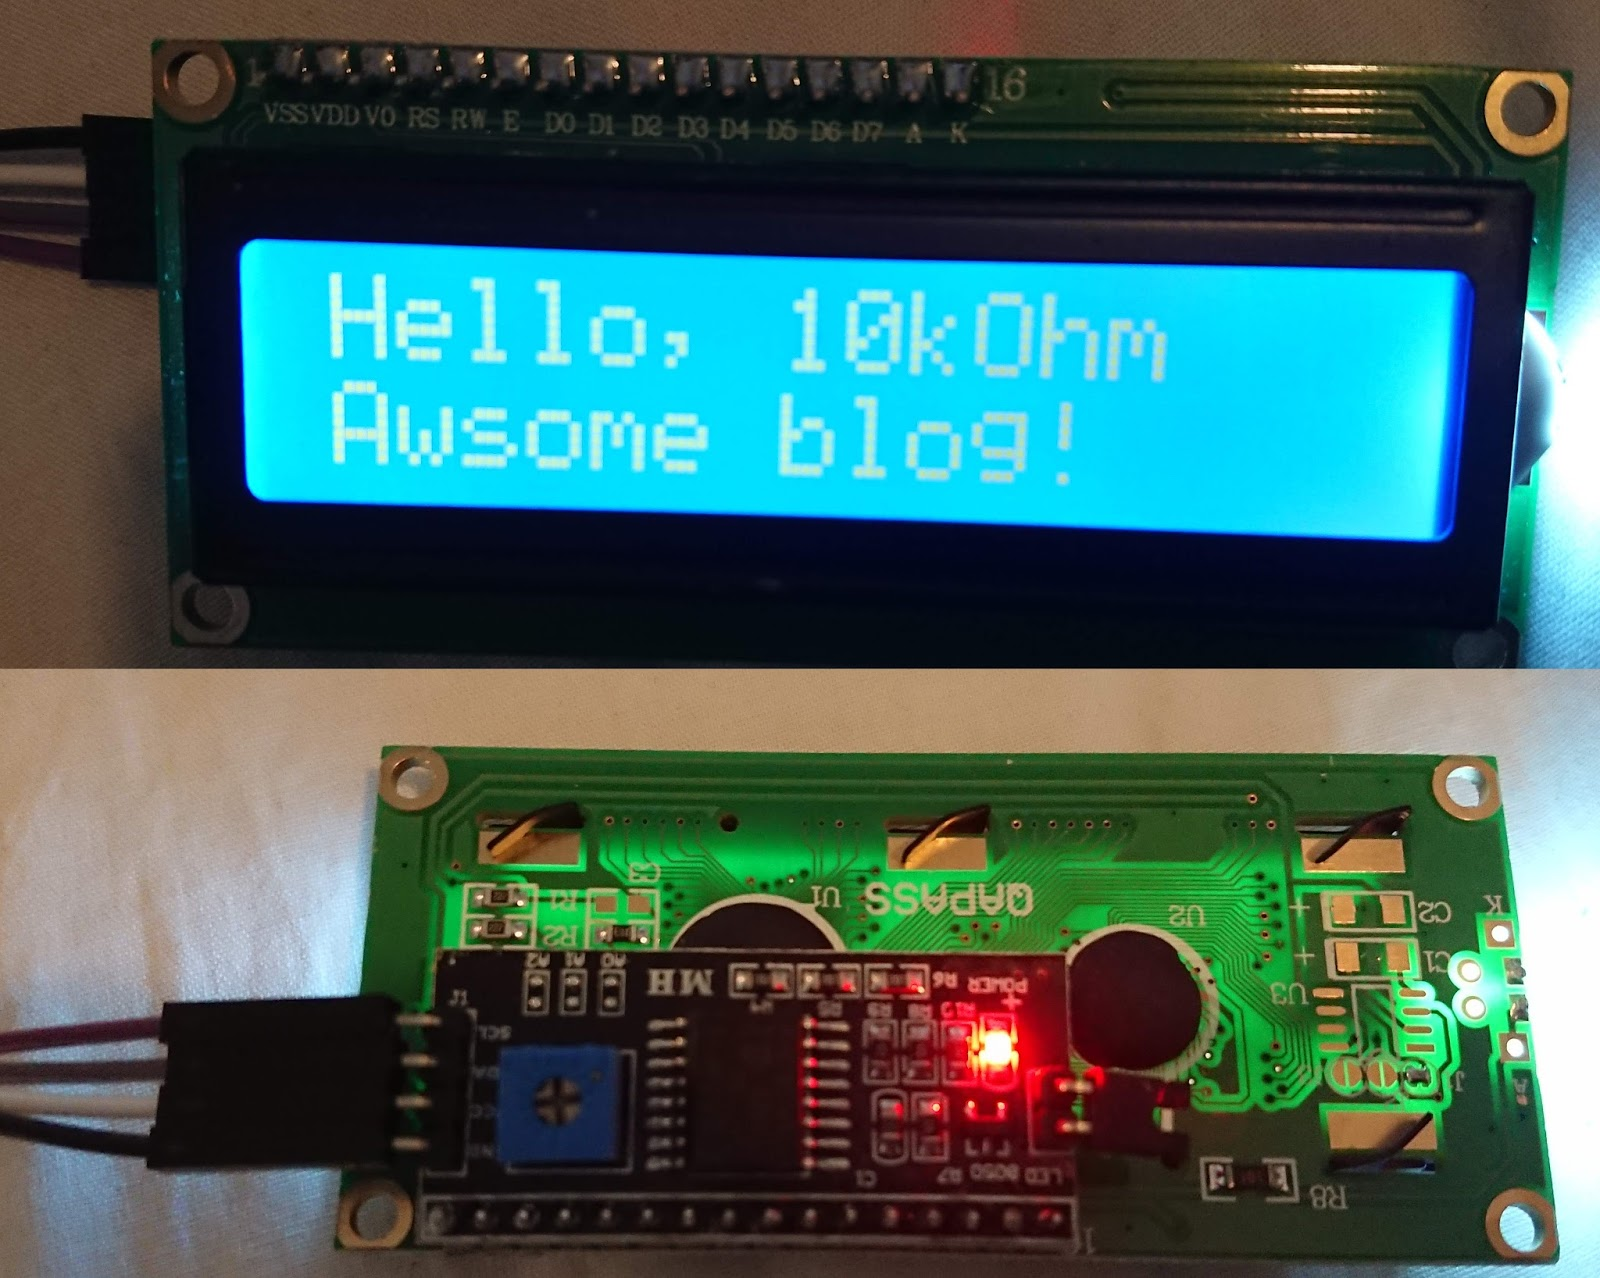 10 kΩ: Cheap LCD 16x2 characters, with I2C LCD1062 interface